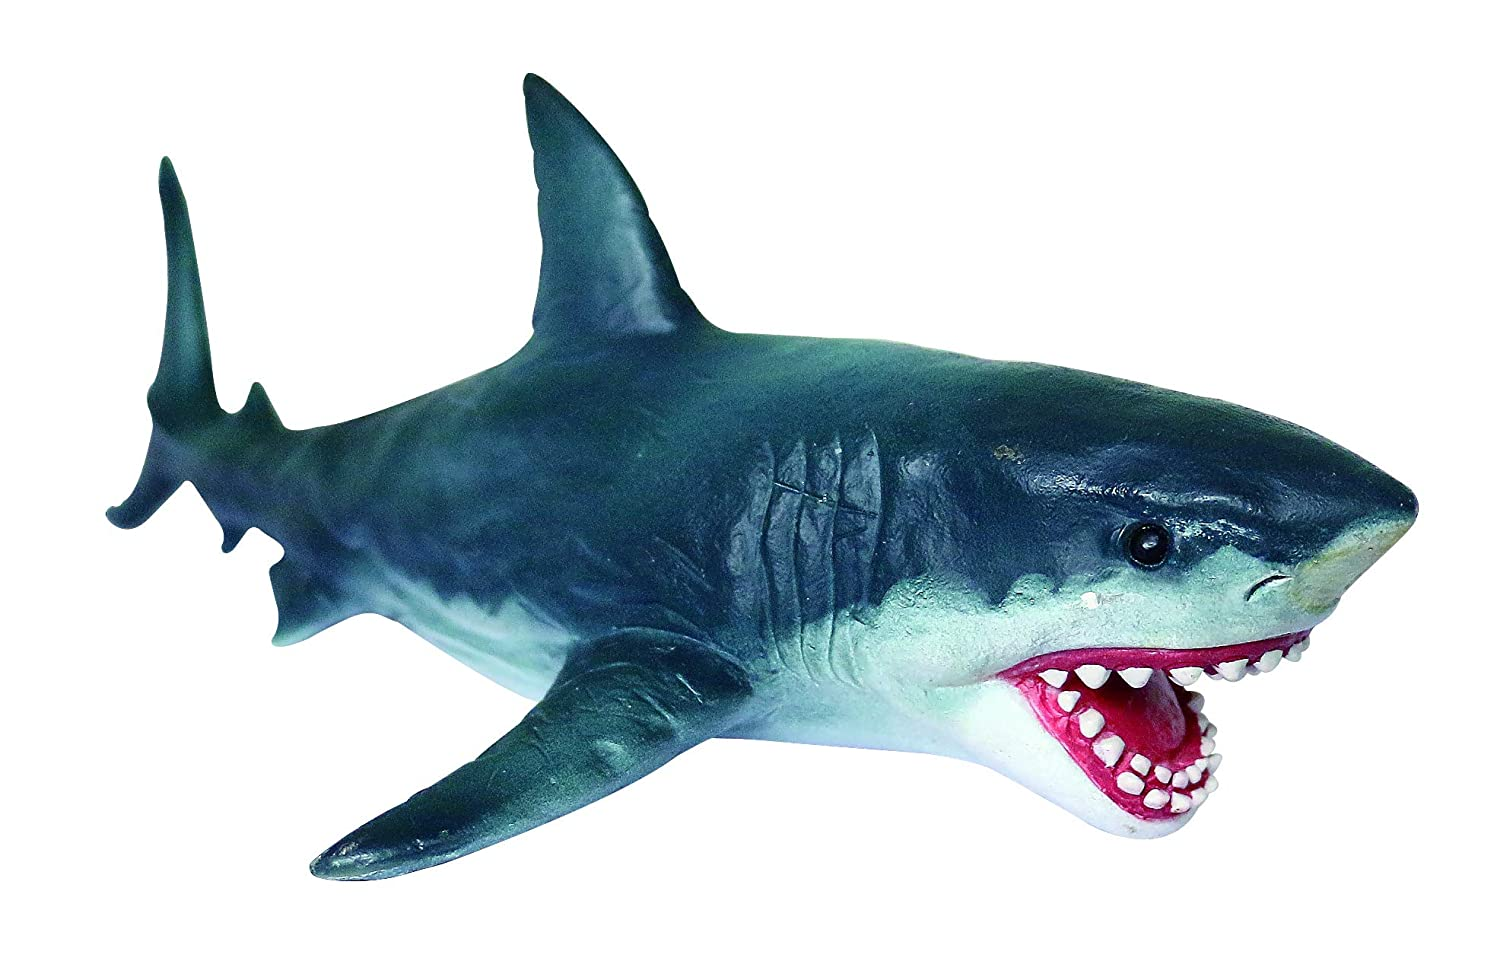 Geminismart Sea Life Great White Shark Action Figure Model Toy Soft Rubber Realistic Educational and Role Play Toys for Kids